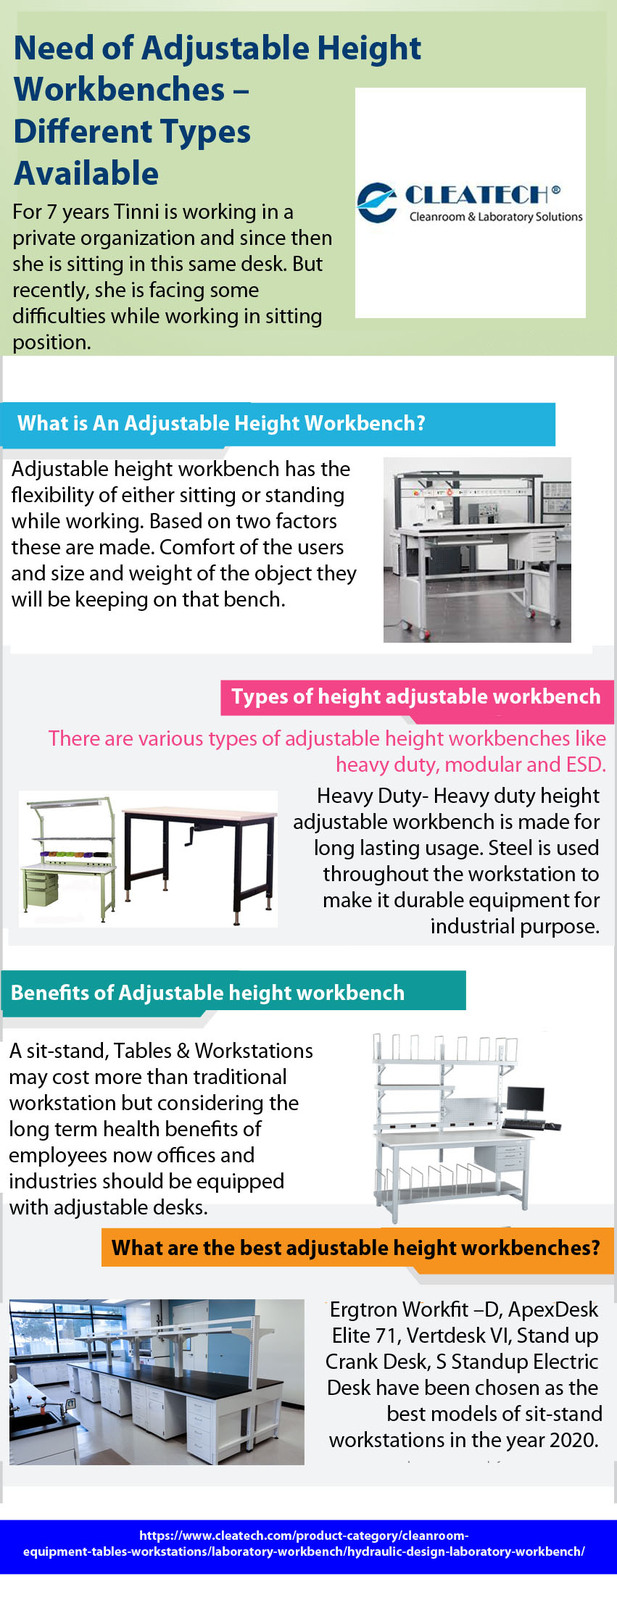 Need of Adjustable Height Workbenches – Different Types Available